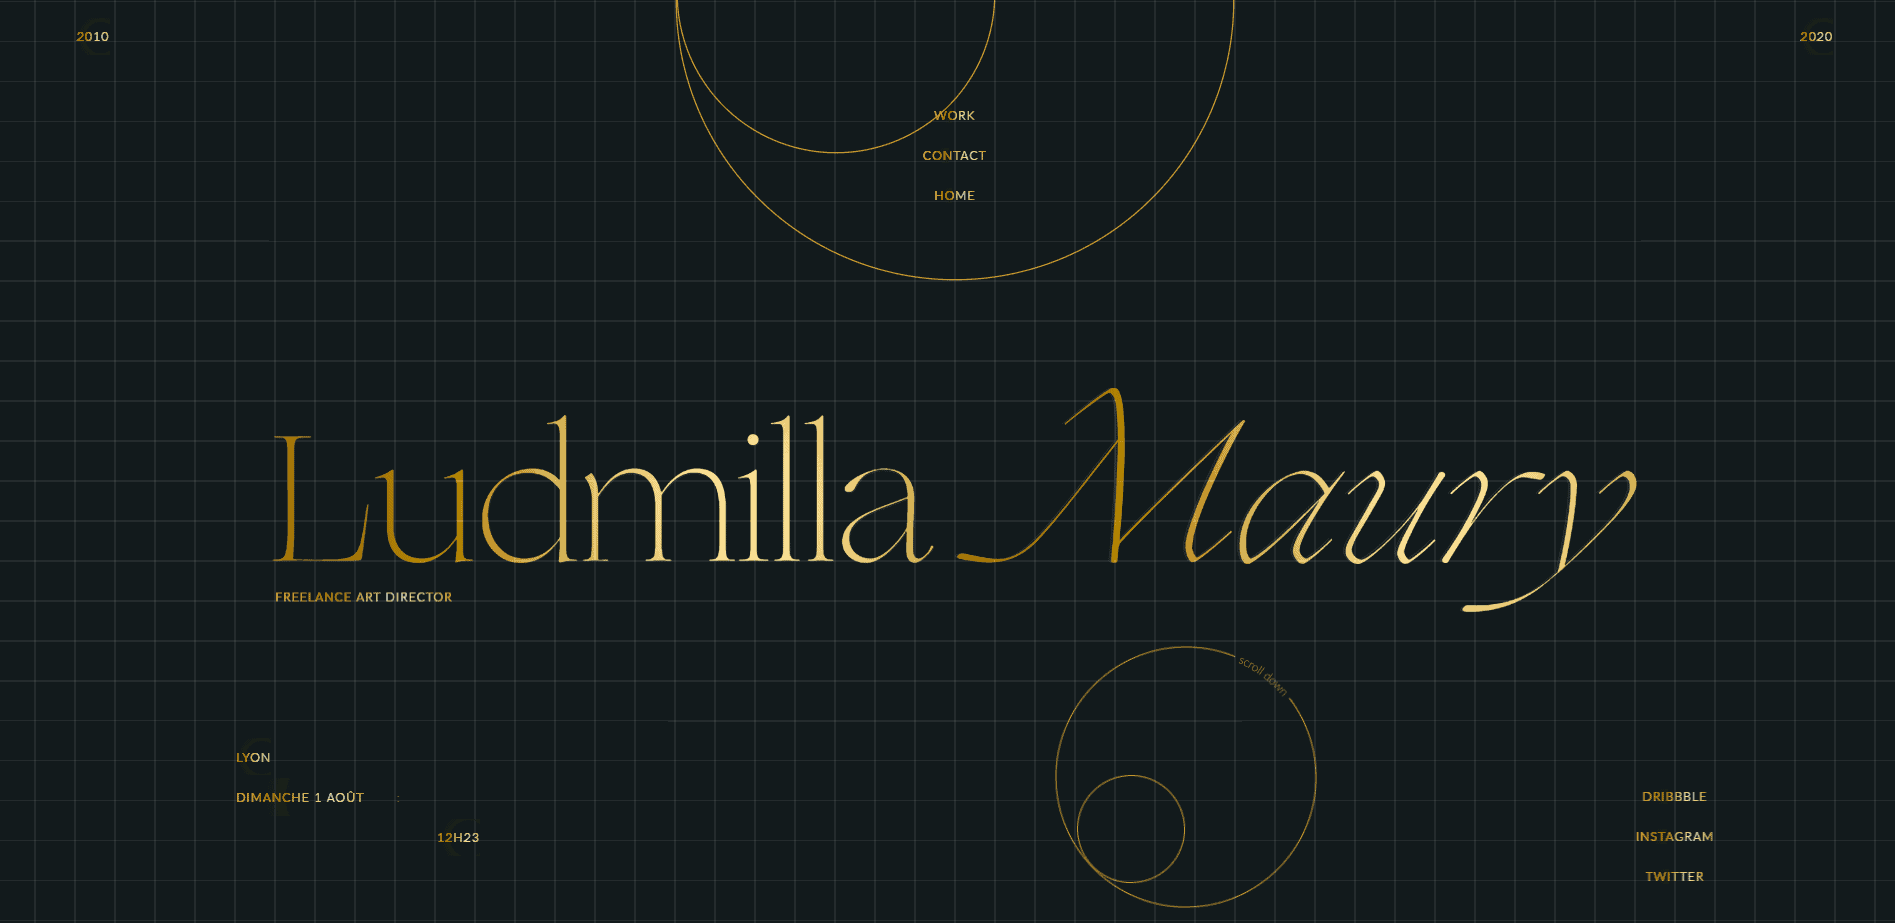 Best Agency Website for Ludmilla Maury